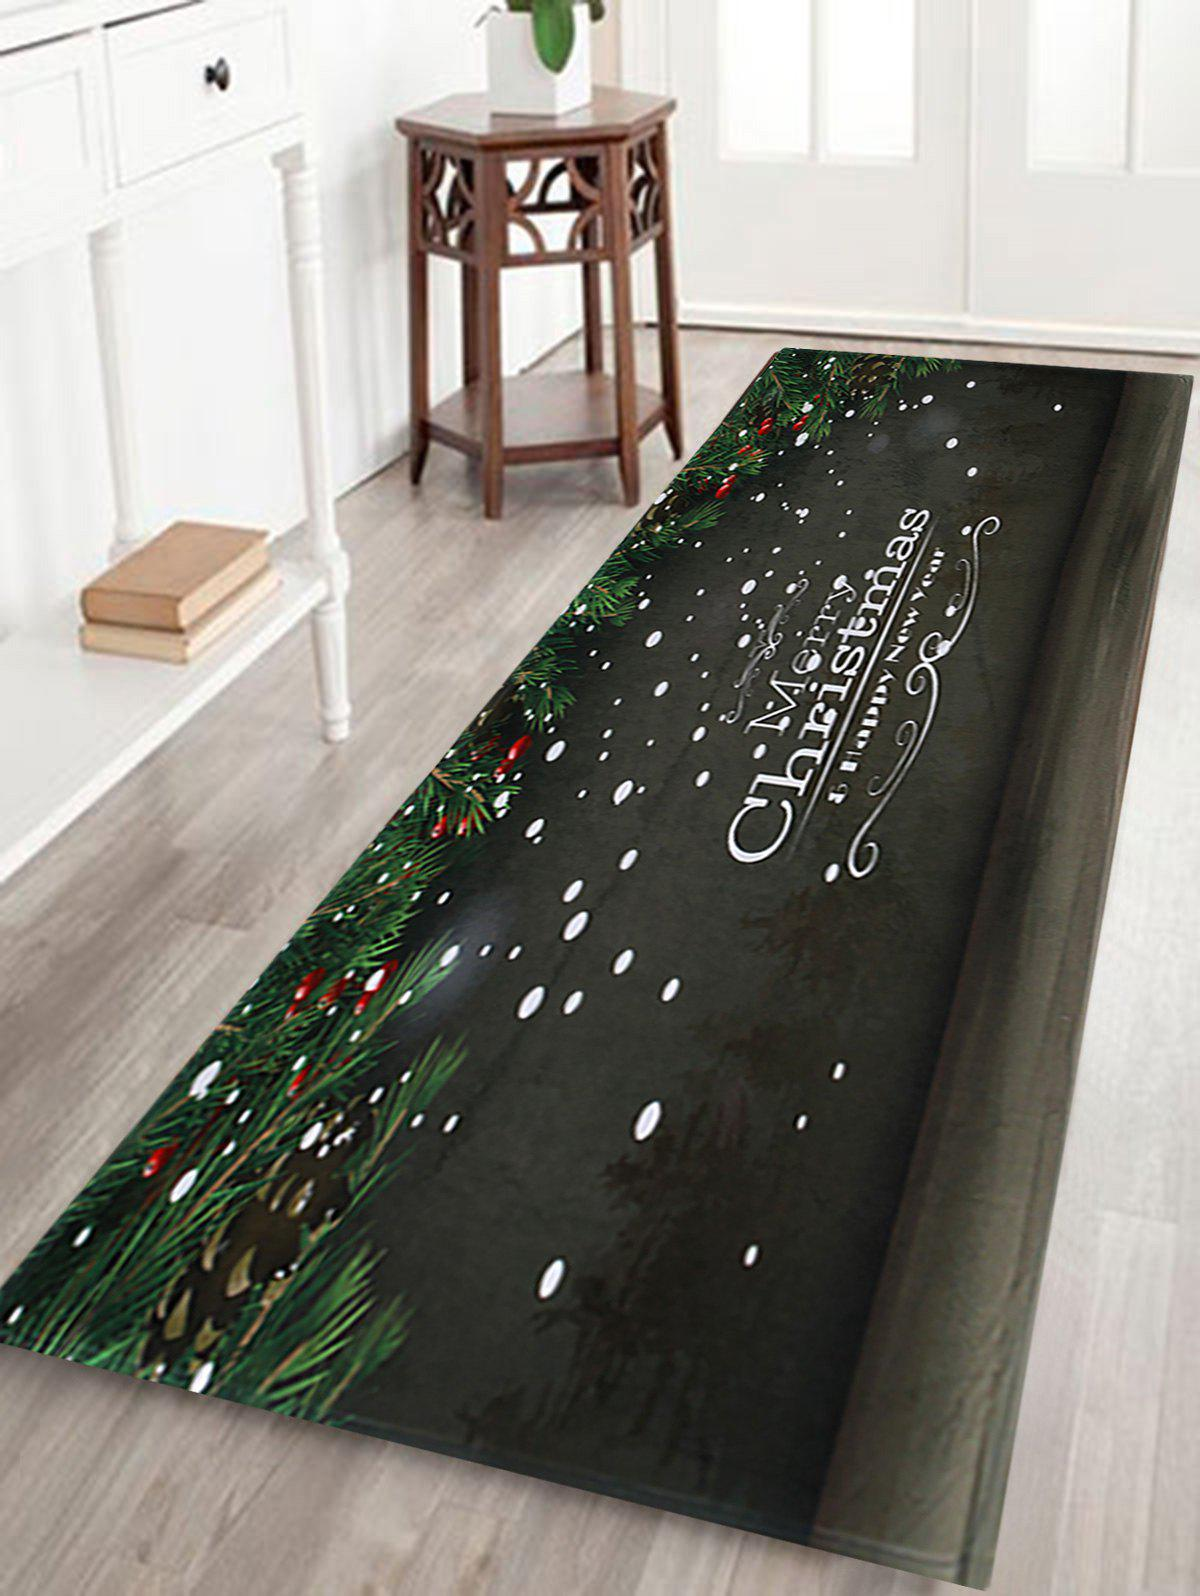 Merry Christmas Printed Coral Fleece Nonslip Bath MatHOME<br><br>Size: W24 INCH * L71 INCH; Color: DARK GREY; Products Type: Bath rugs; Materials: Coral FLeece; Pattern: Letter,Plant; Style: Festival; Shape: Rectangular; Package Contents: 1 x Rug;